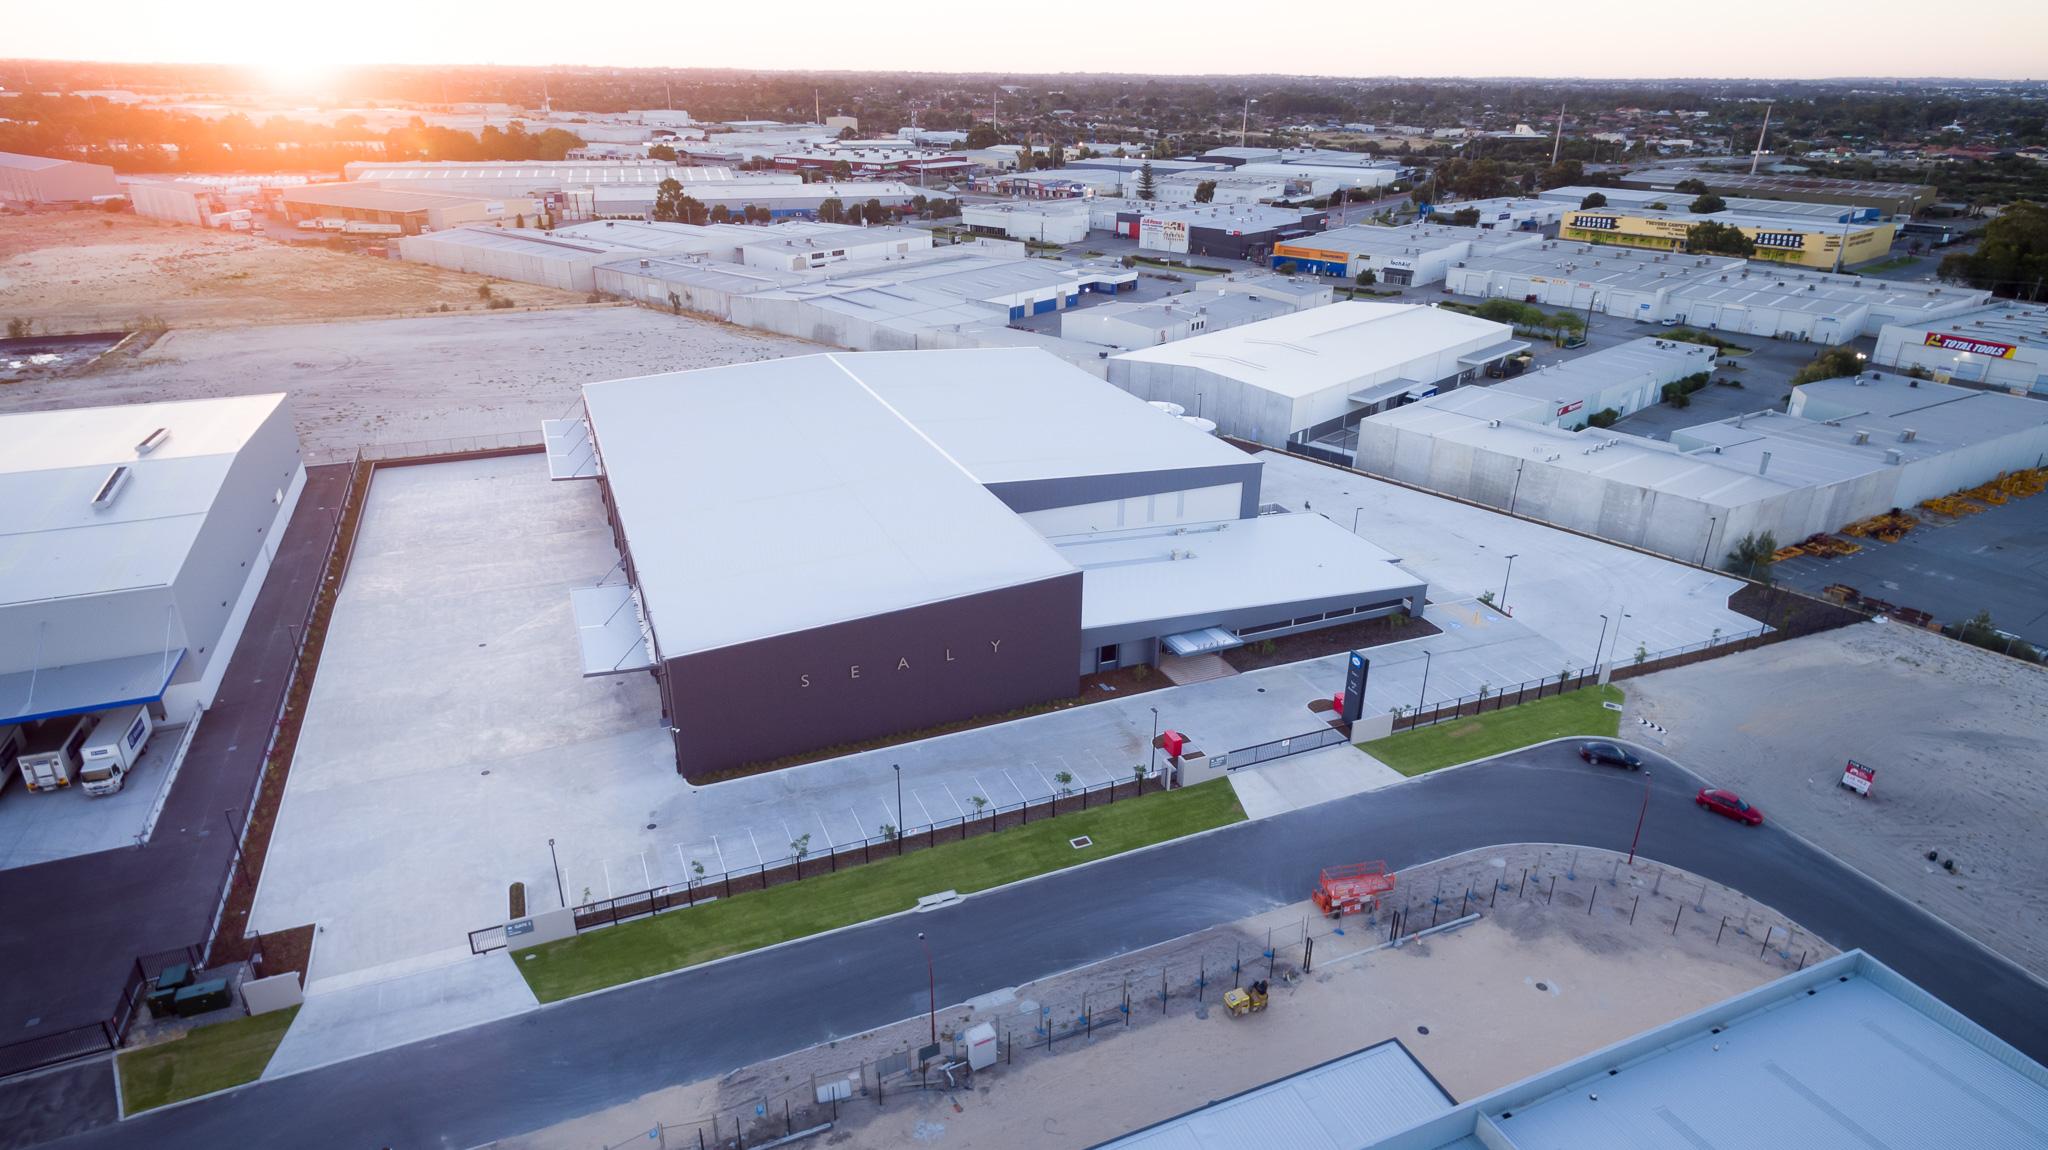 drone-image-uac-commercial-property-real-estate-photography